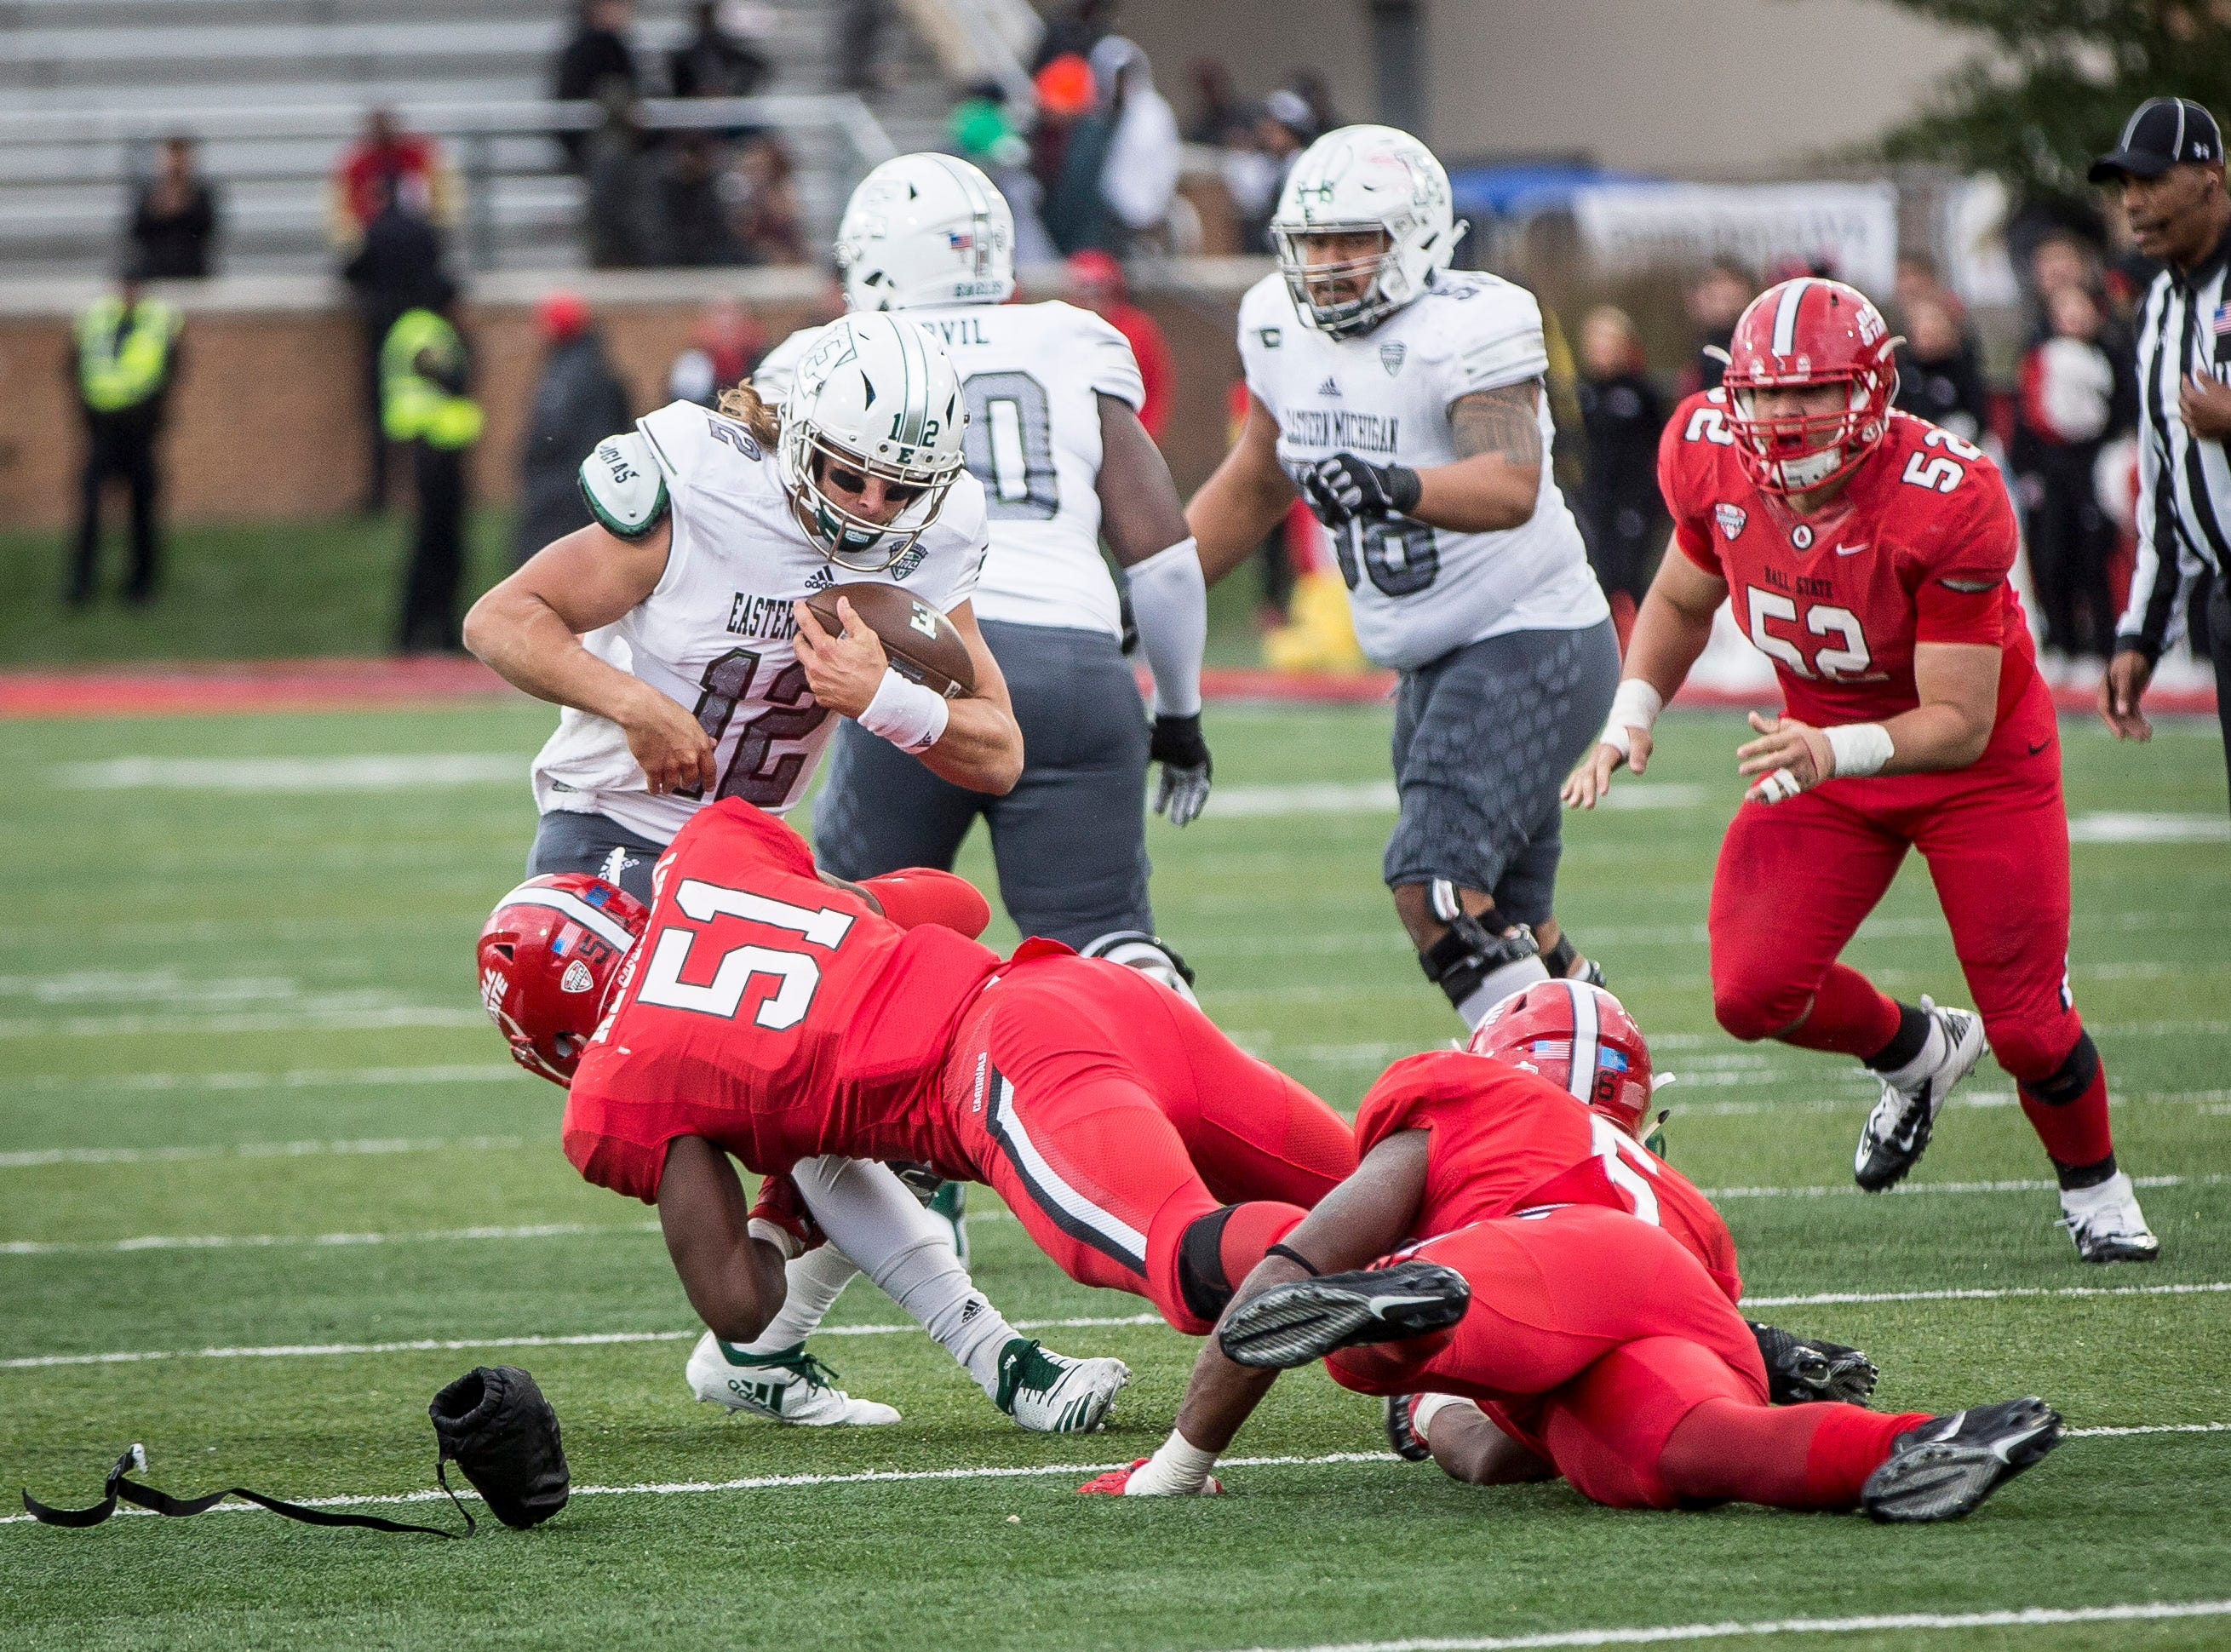 Ball State lost to Eastern Michigan Saturday afternoon at Scheumann Stadium for their homecoming game. Eastern Michigan won with a final score of 42-20.